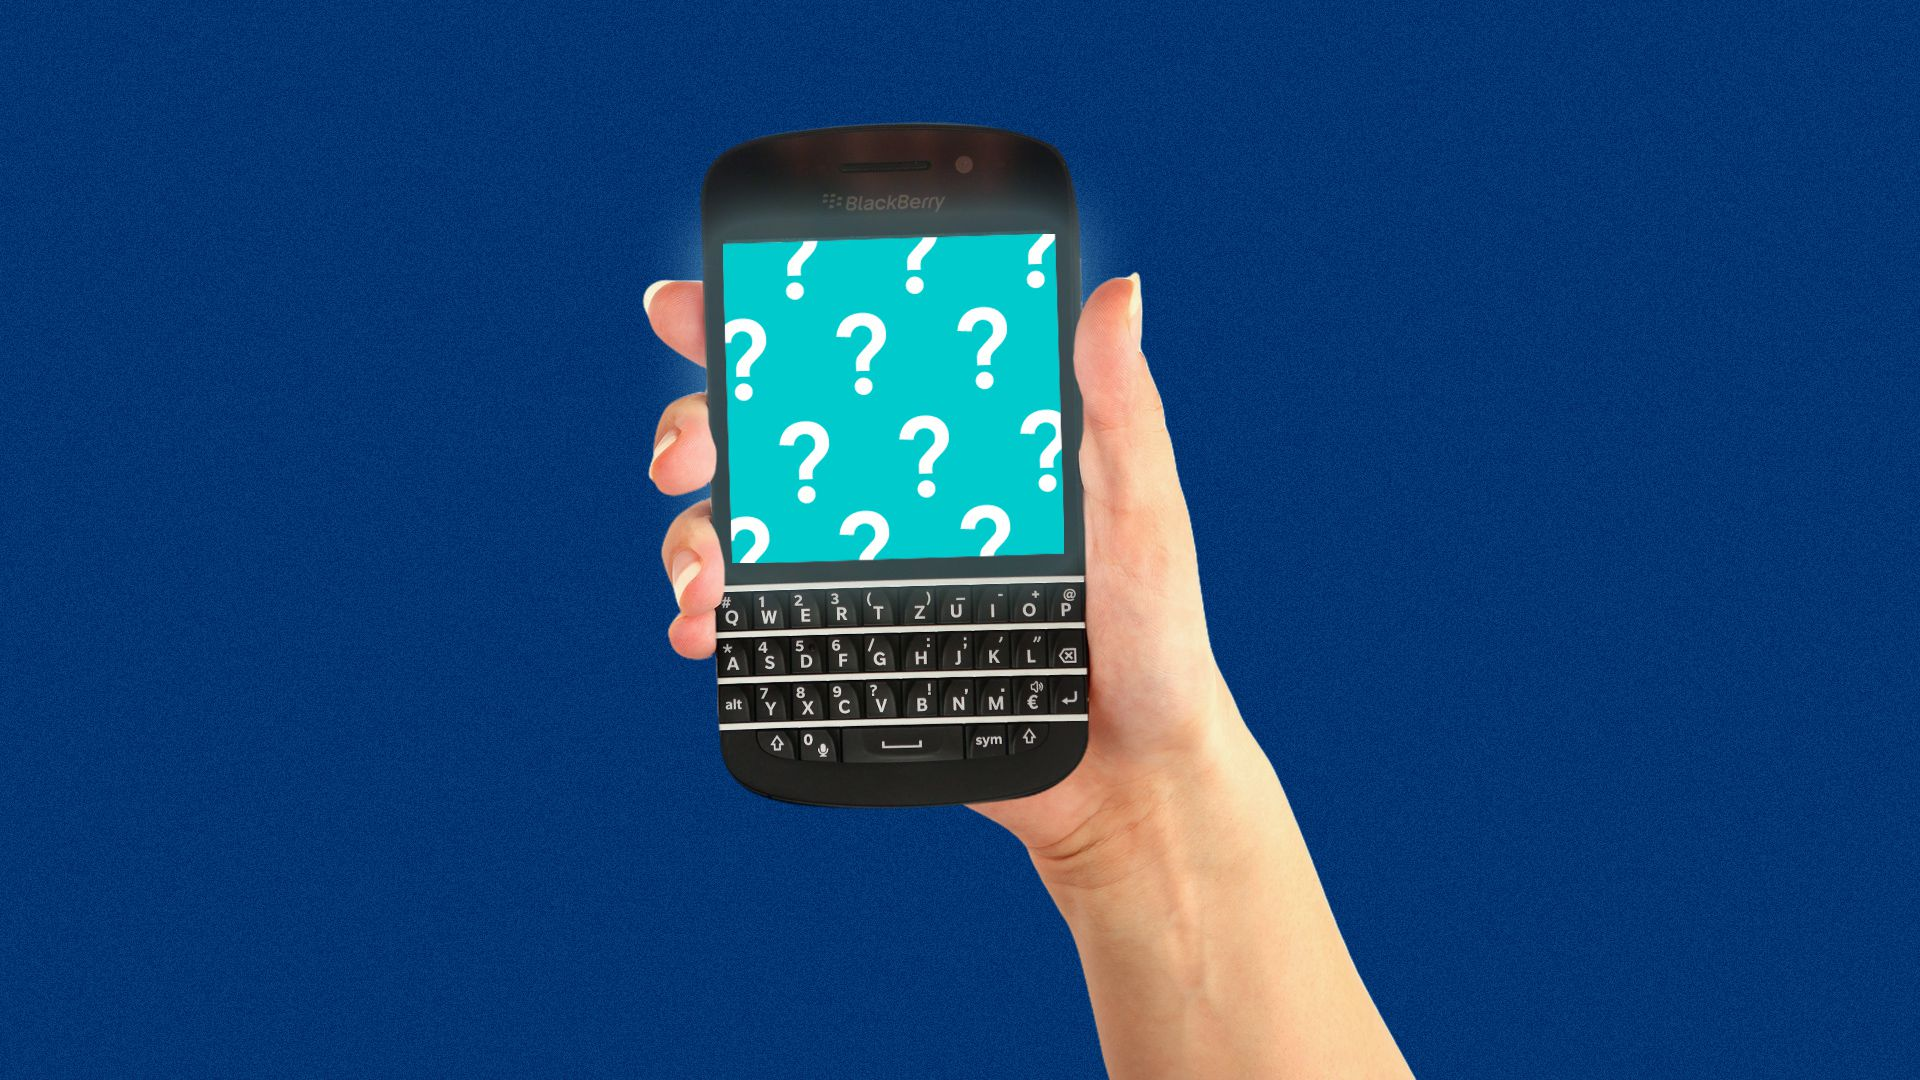 Illustration of a hand holding a BlackBerry phone with question marks on the screen.